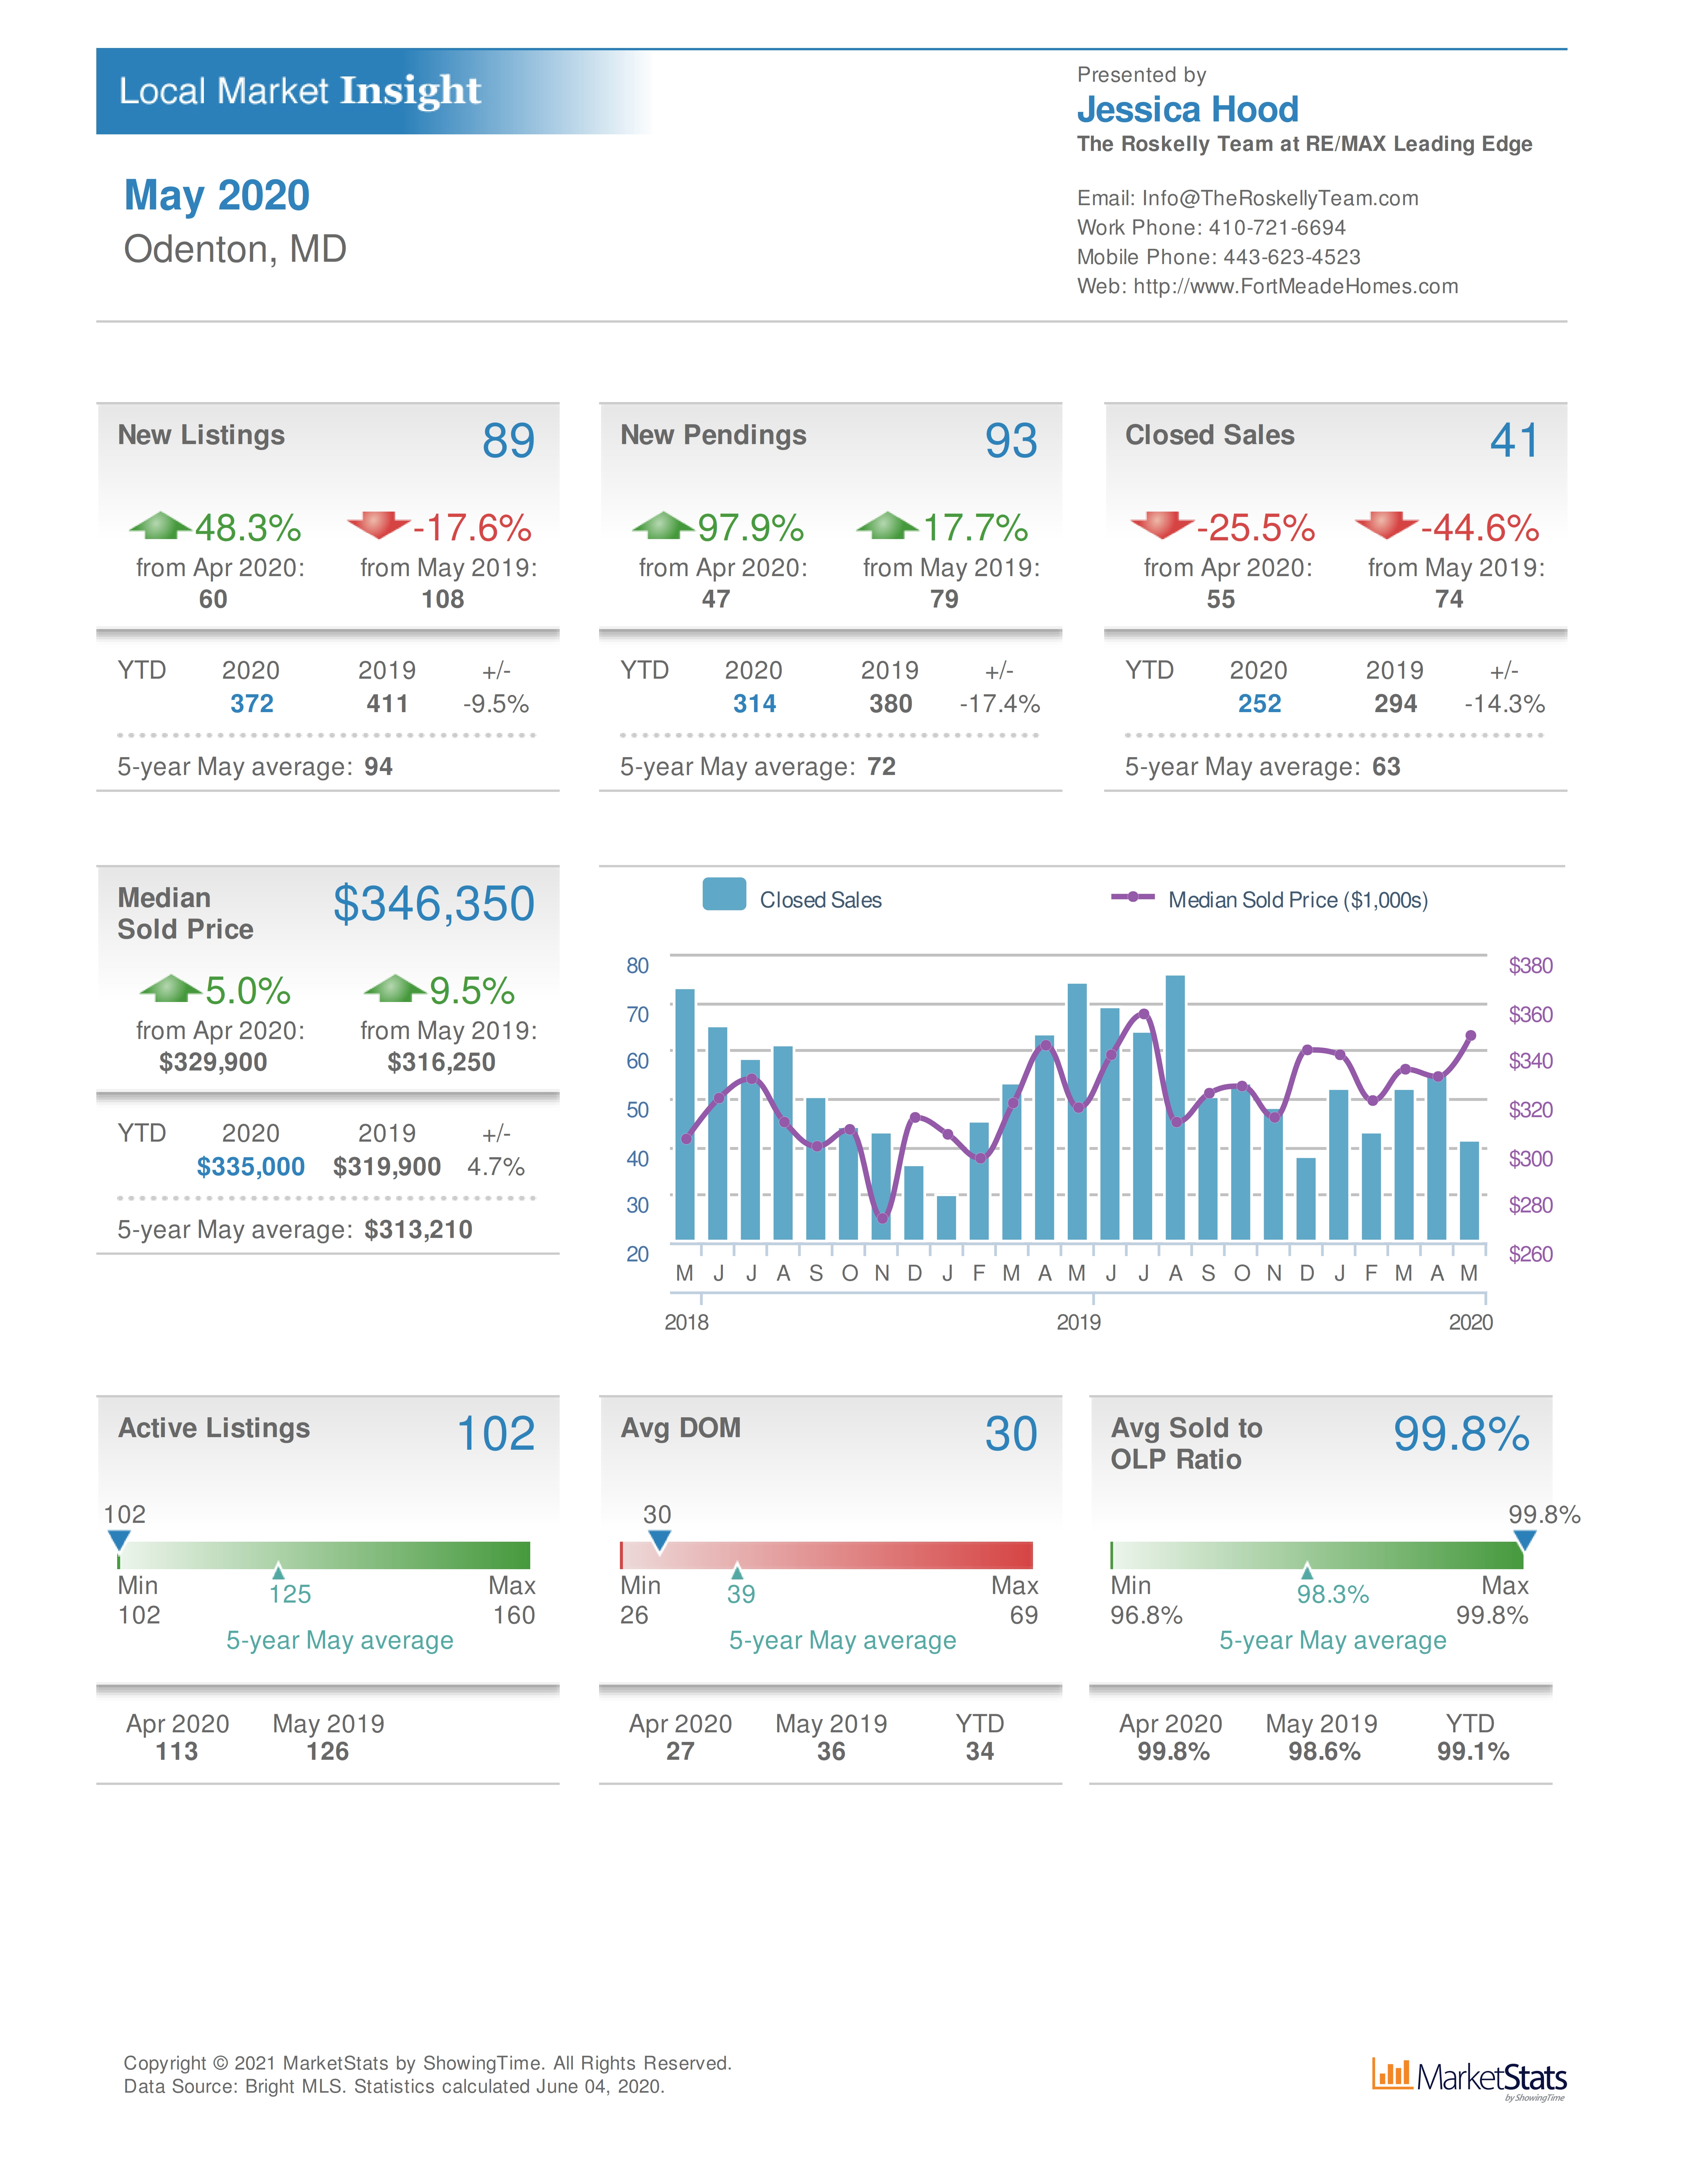 Odenton MD home sales and real estate values